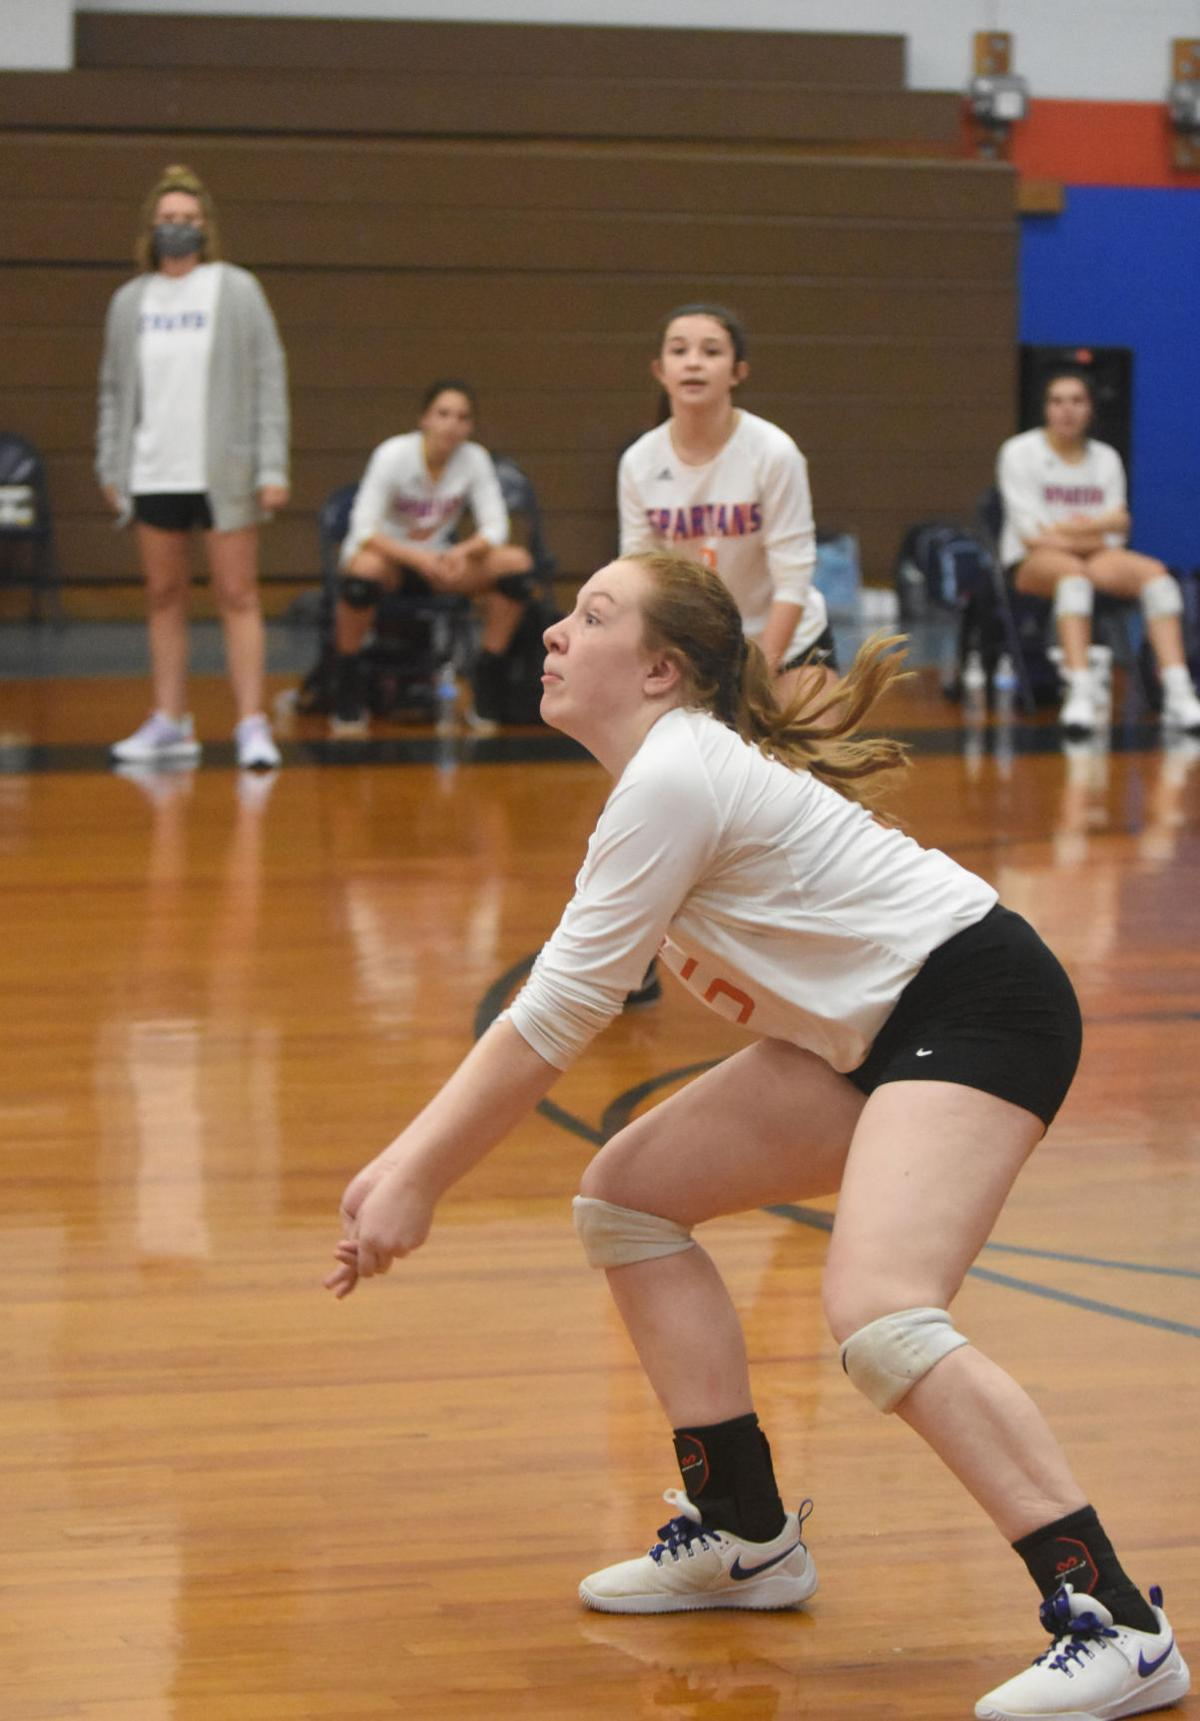 HENSPTS-07-31-21 FALL SPORTS (Photo Package)1